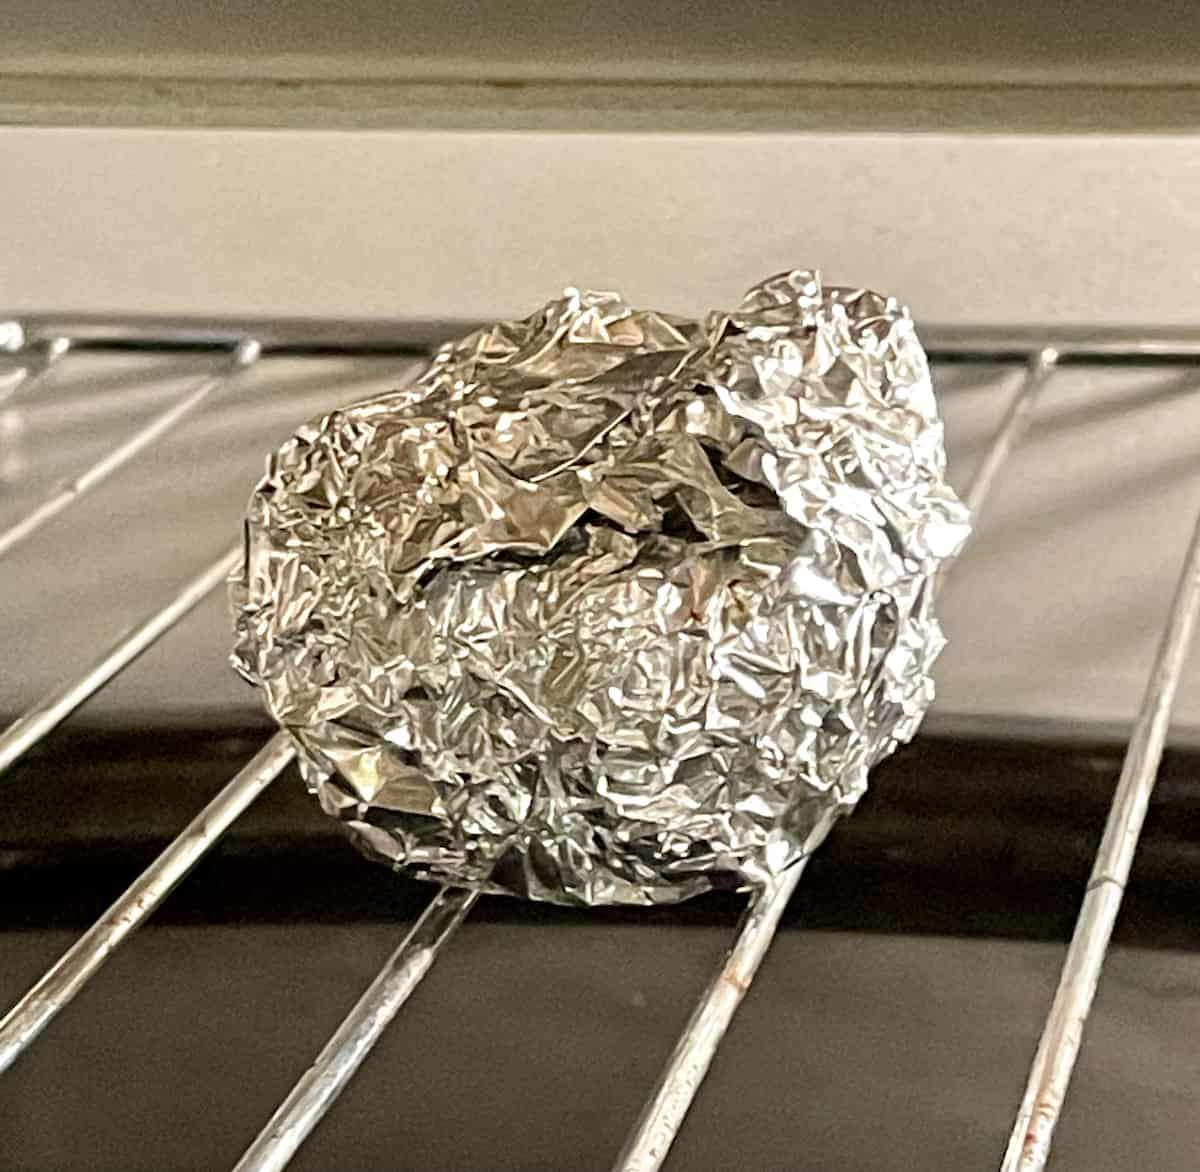 foiled wrapped garlic bulb in an air fryer